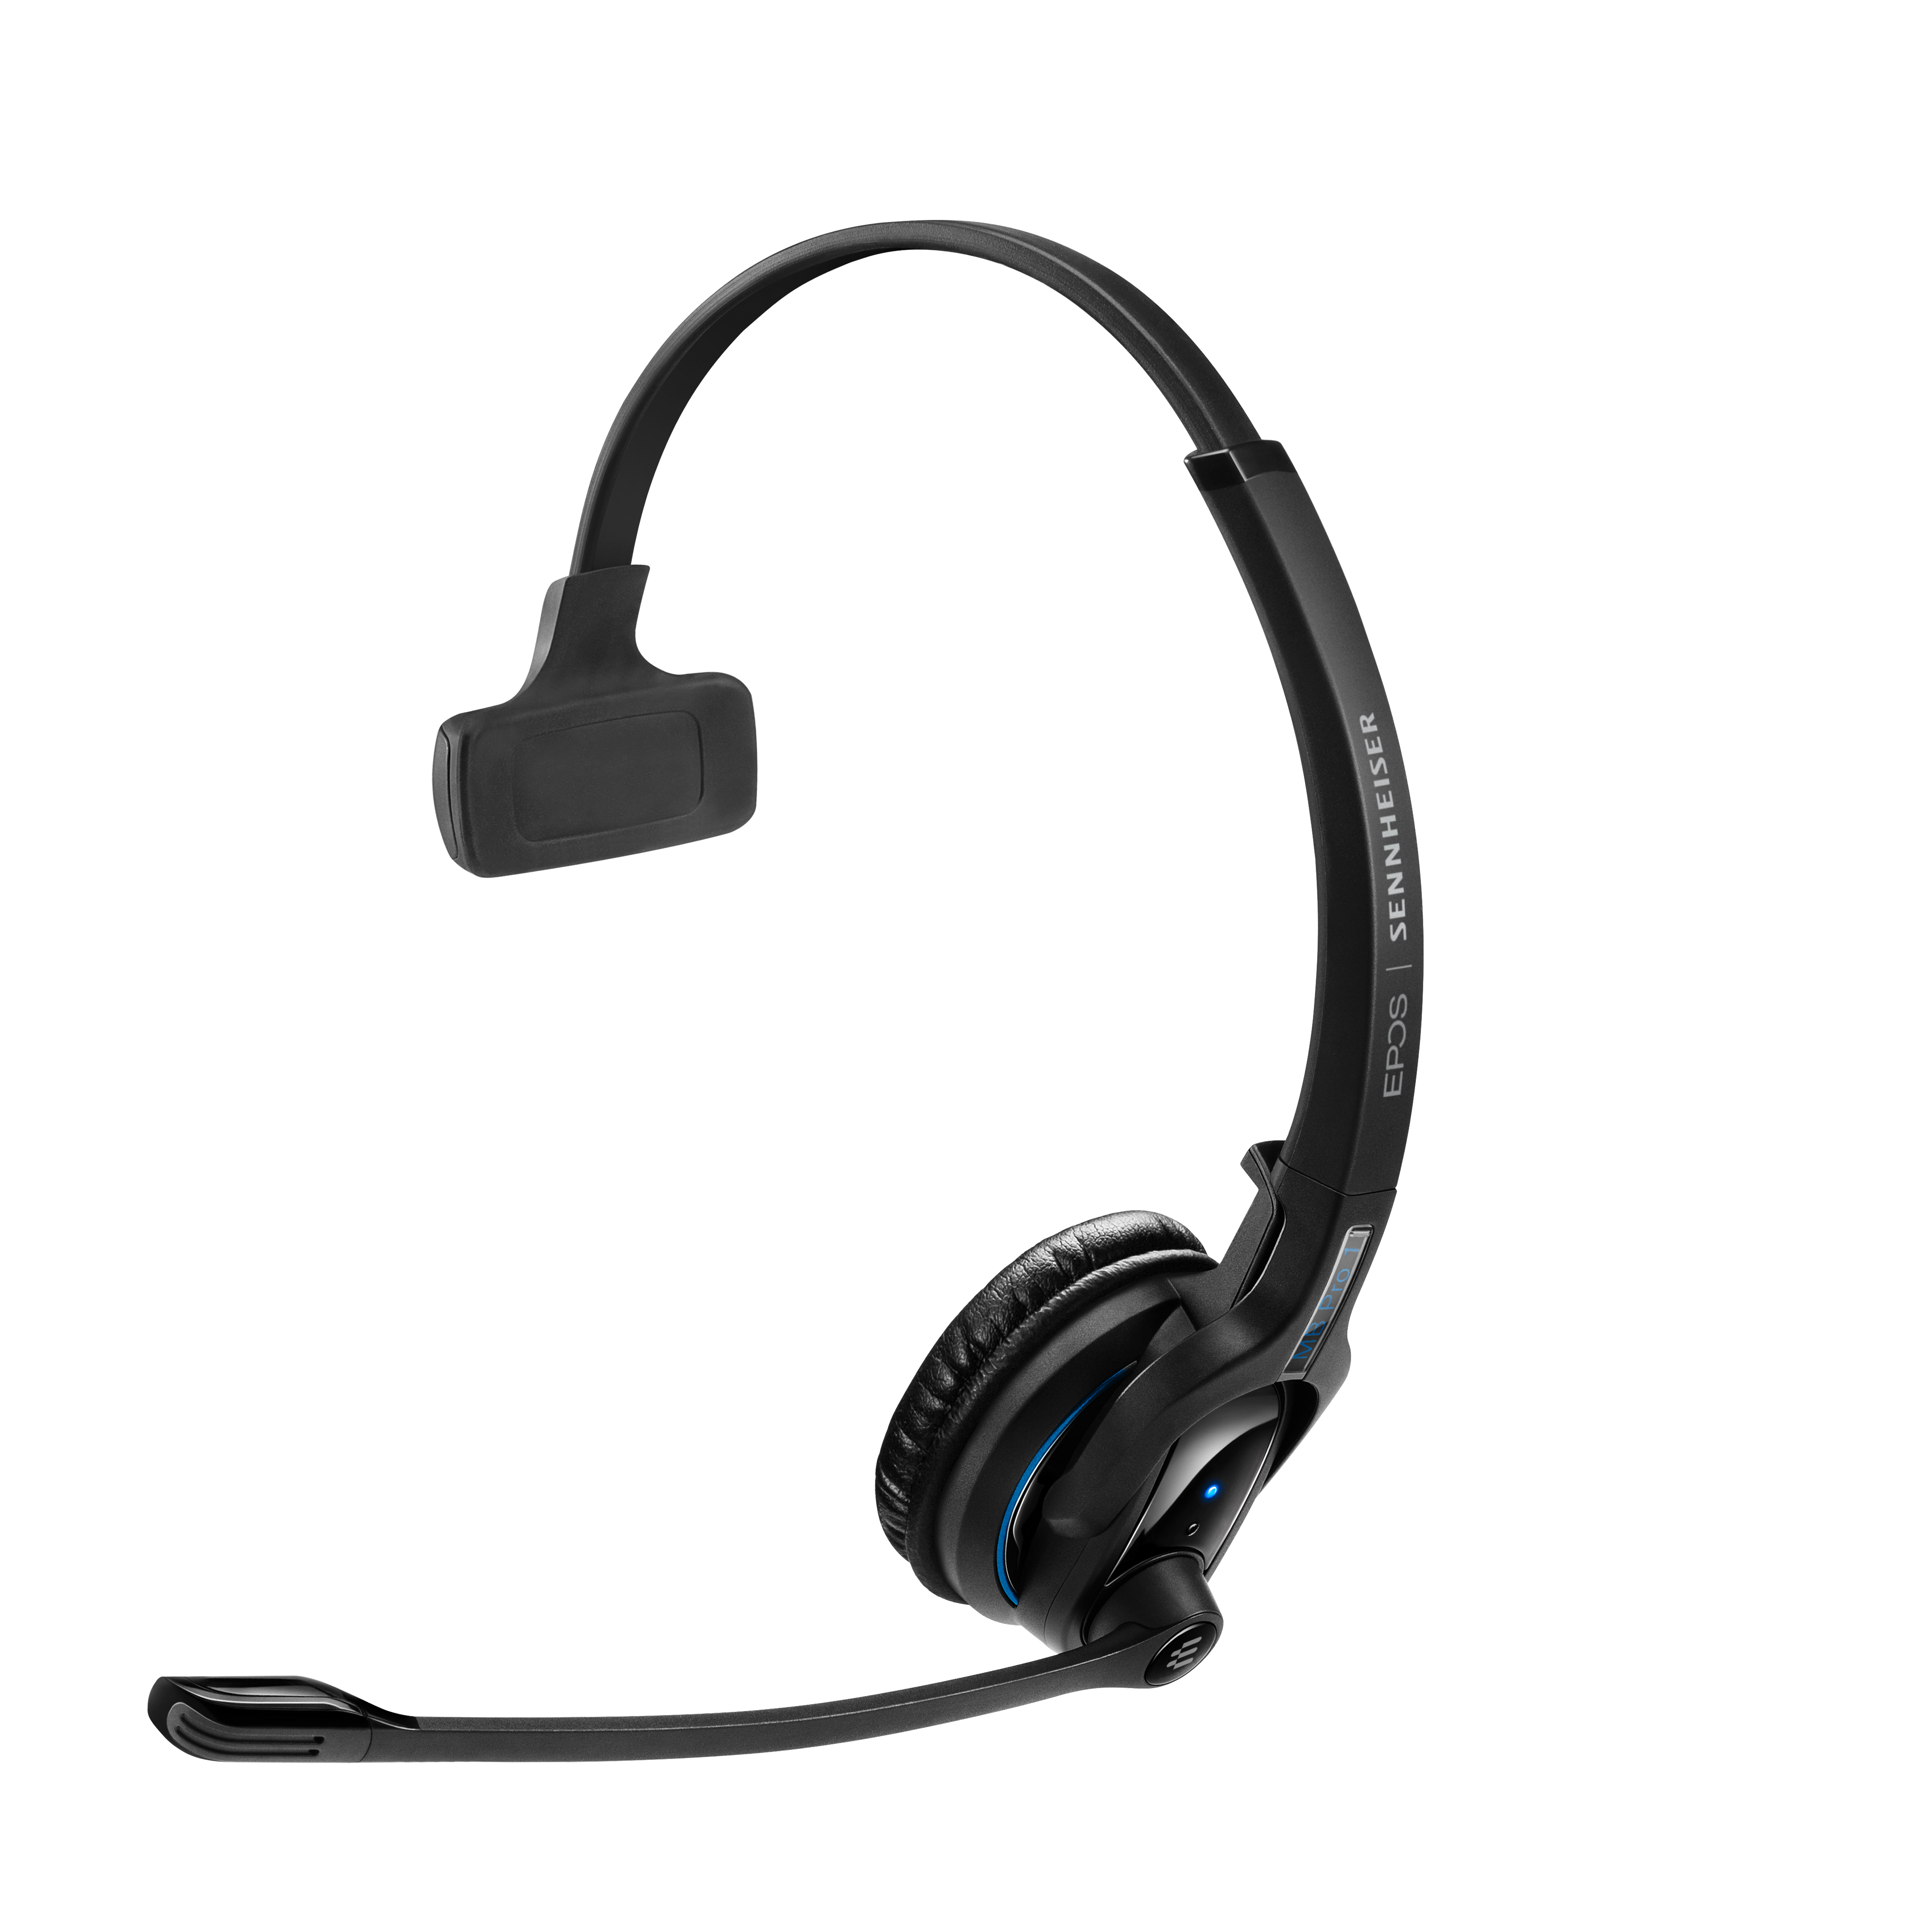 EPOS | Sennheiser IMPACT MB Pro1 UC ML Bluetooth 4.0 Headset with Desk USB Stand, Monaural, Noise Cancelling Mic, Upto 15 Hours Talk, Teams Certified